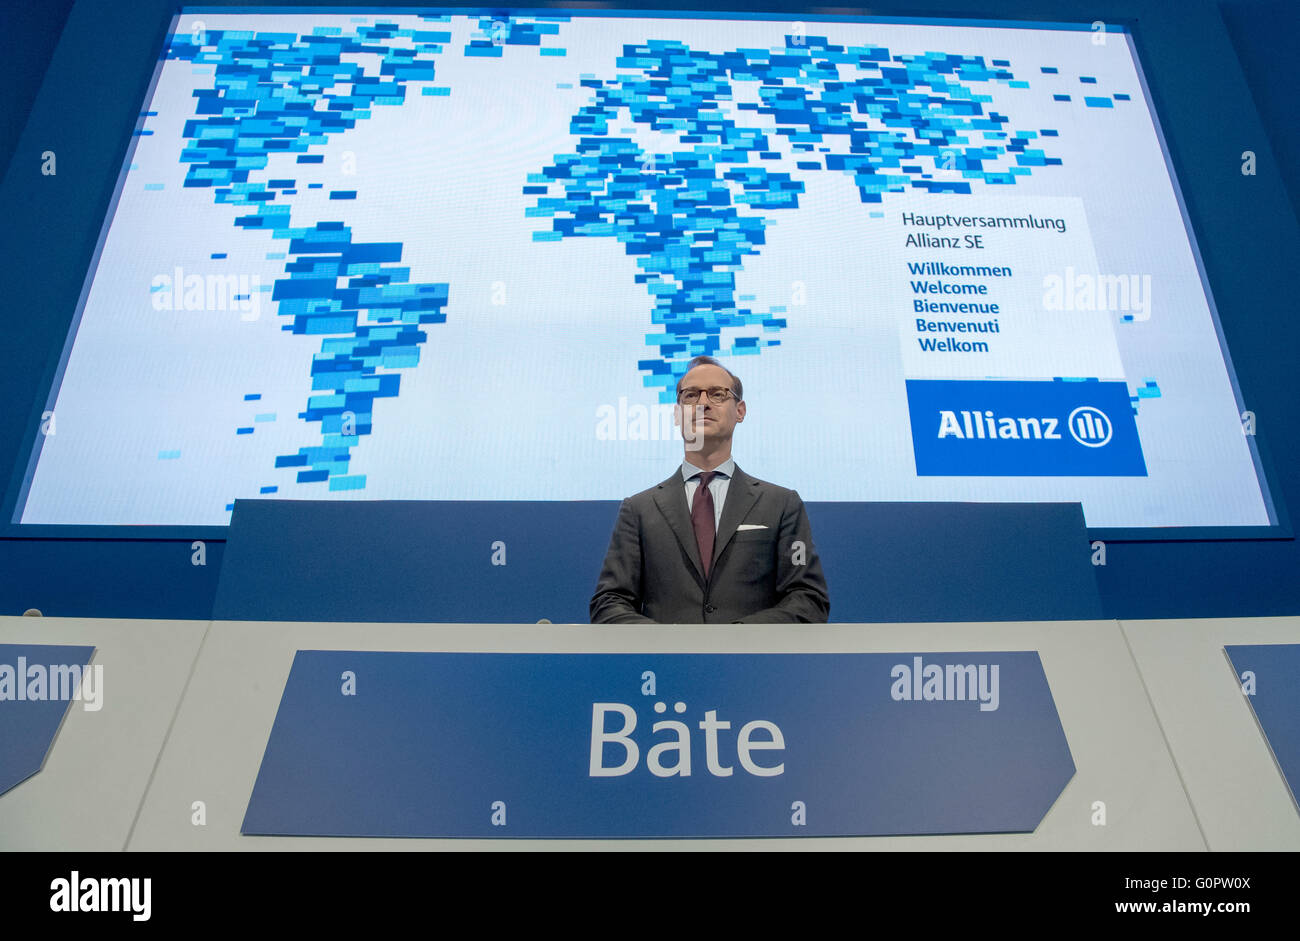 Munich, Germany. 04th Apr, 2016. CEO of Allianz SE, Oliver Baete, stands at the podium ahead of the Allianz general assembly in Munich, Germany, 04 April 2016. Photo: PETER KNEFFEL/dpa/Alamy Live News Stock Photo